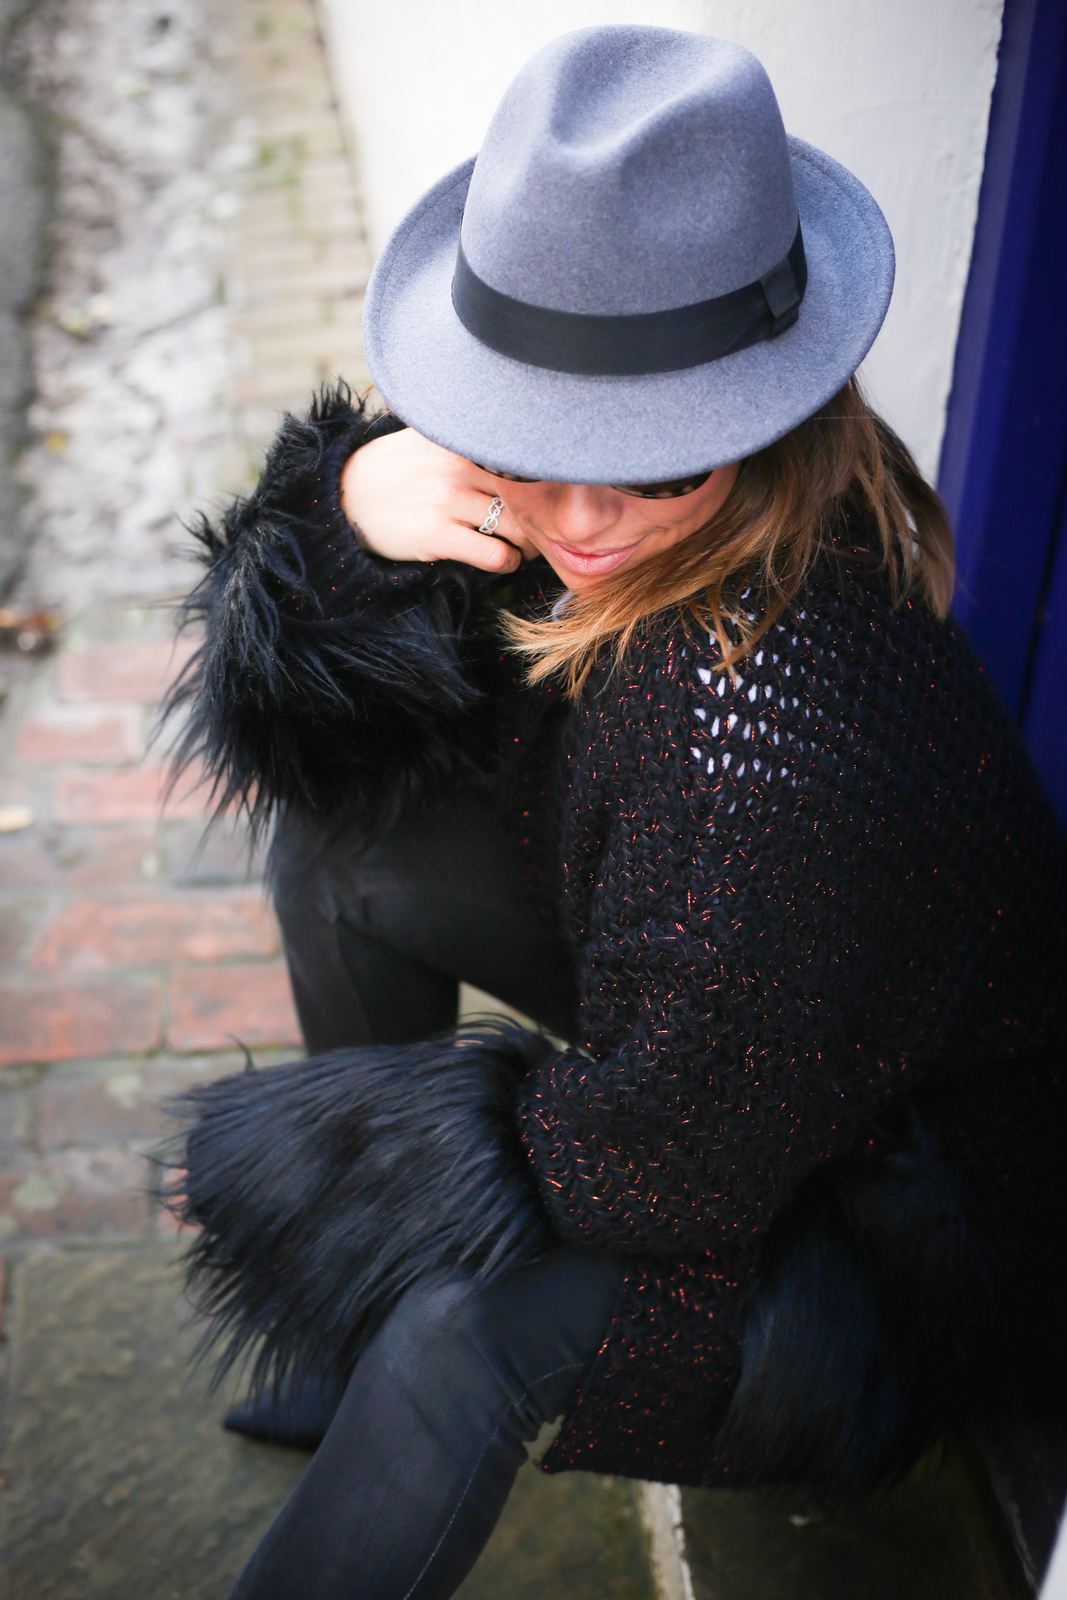 Claire Elizabeth wearing black faux fur trimmed coatigan black leather trousers and Taylor Morris sunglasses sitting on a step in front of a blue door